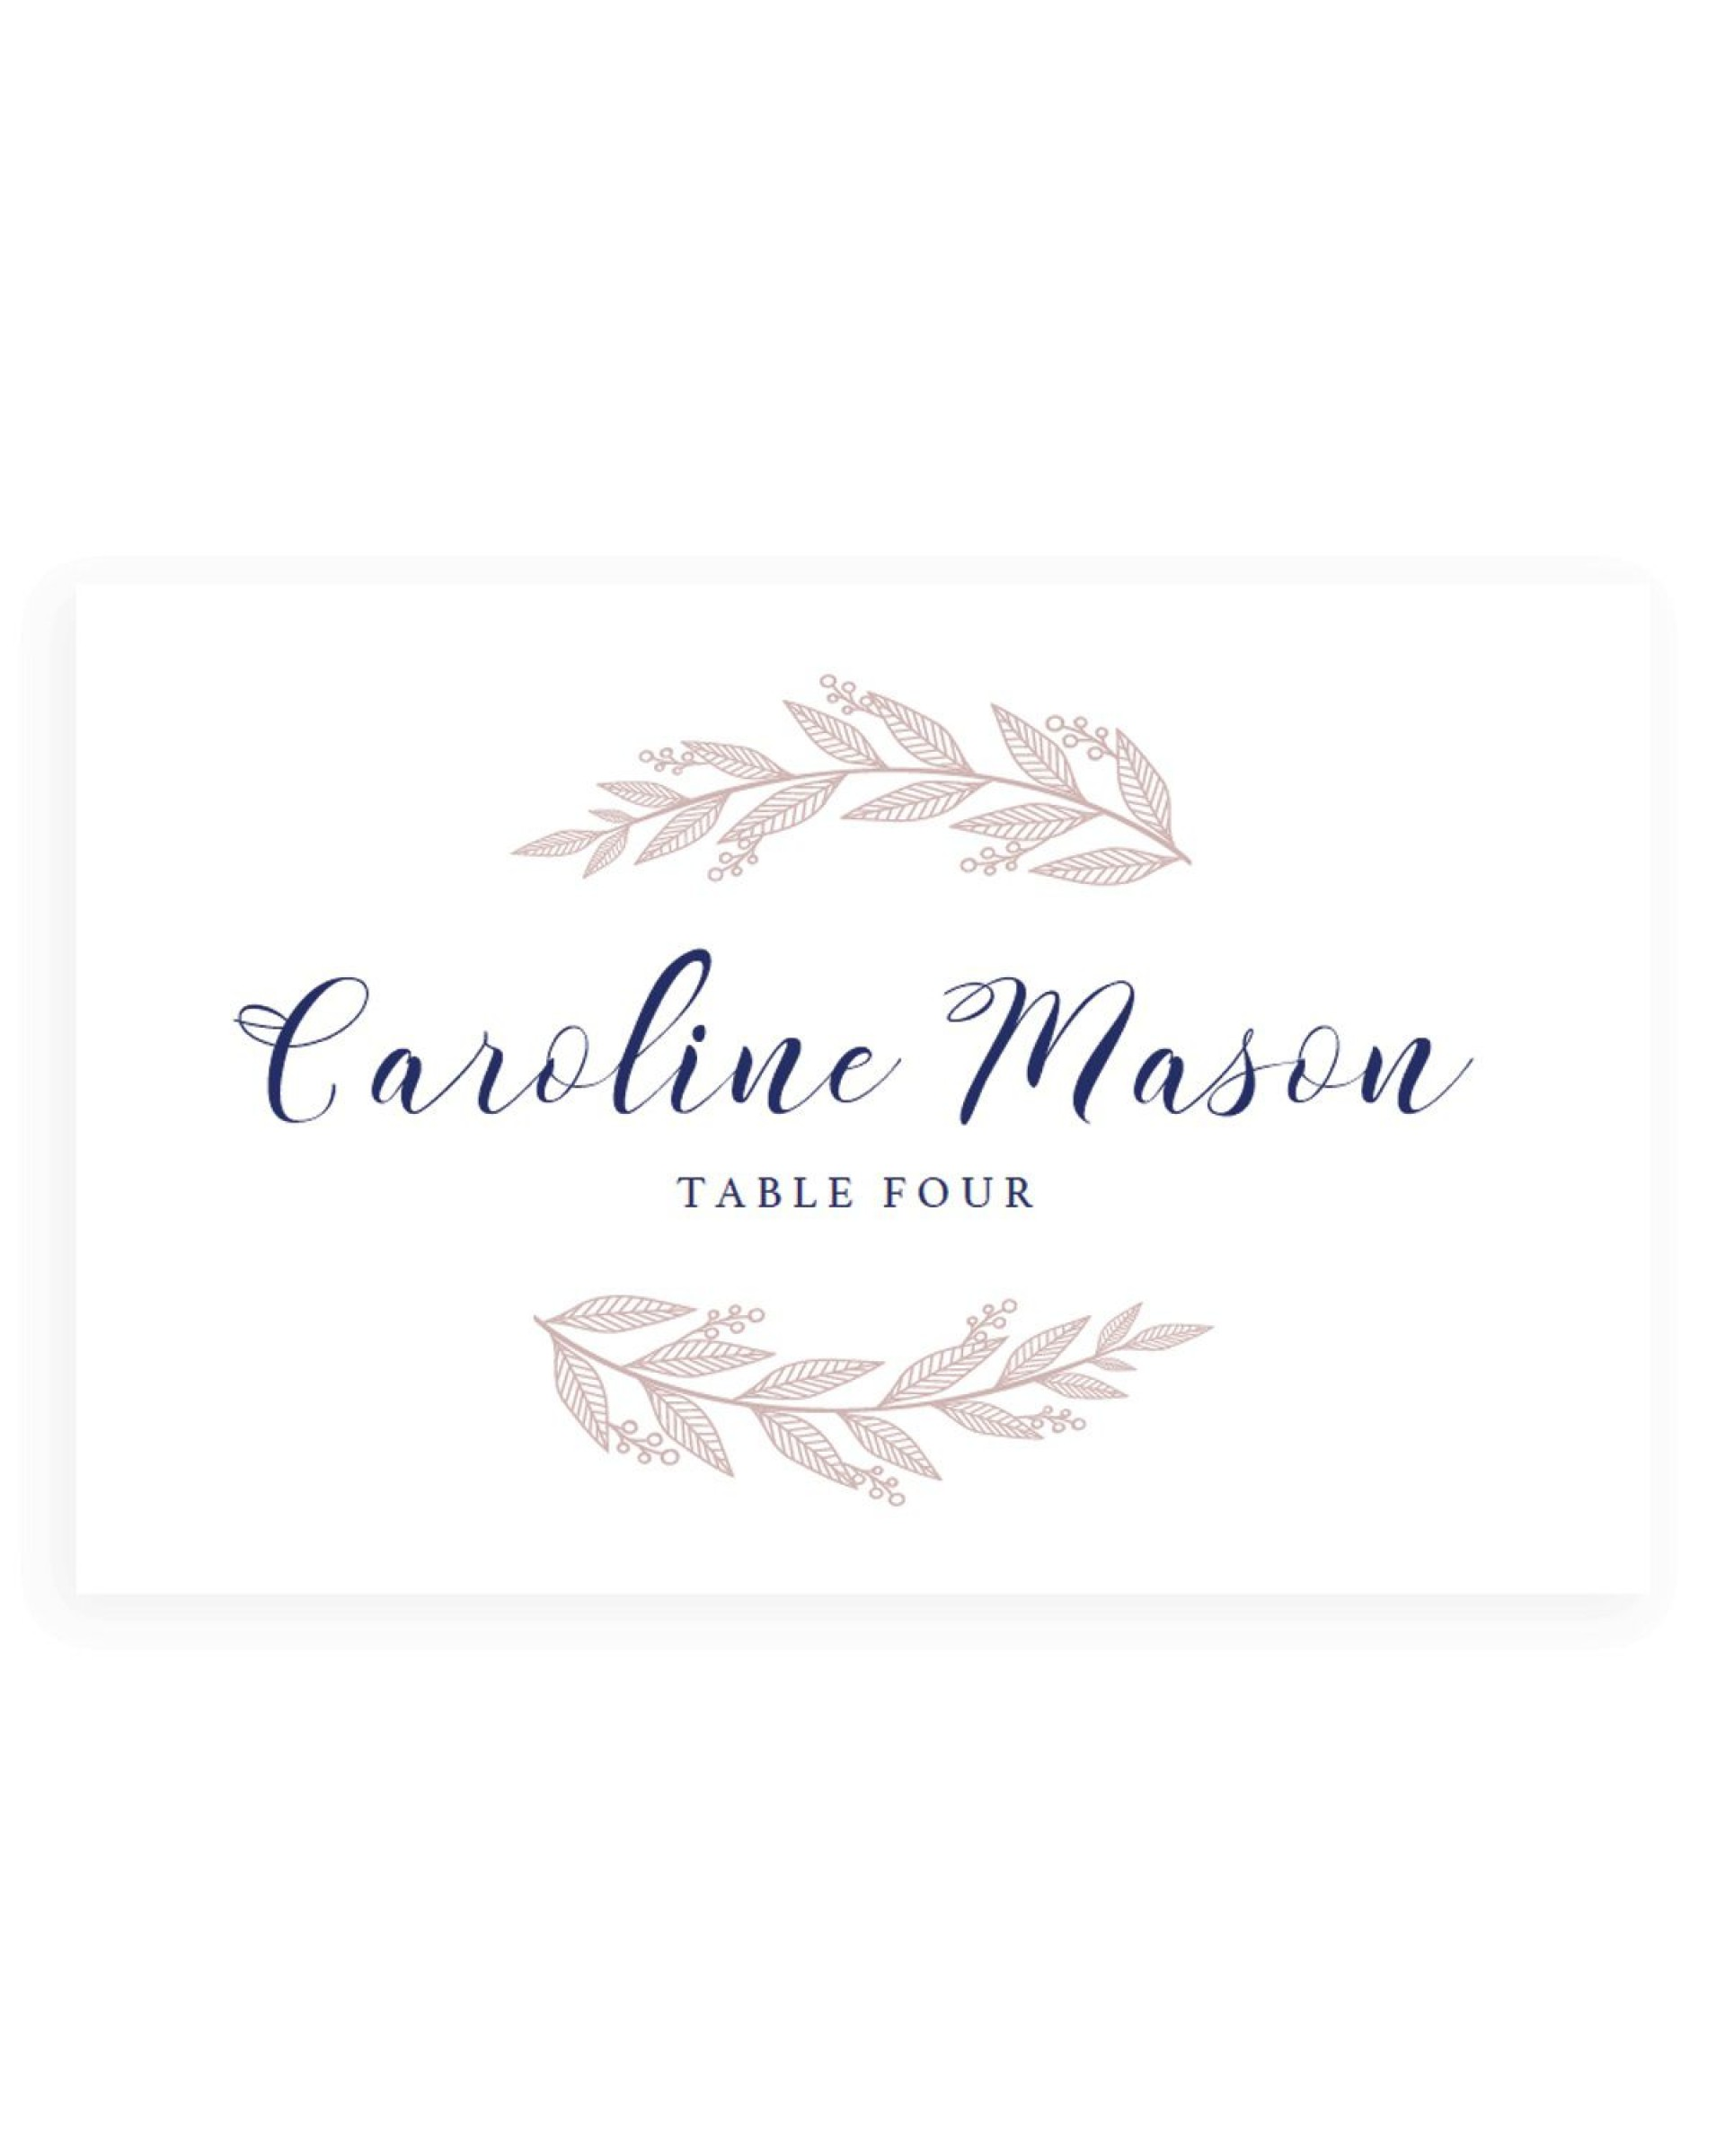 001 Surprising Wedding Name Card Template High Def  Templates For Table Place Free1920